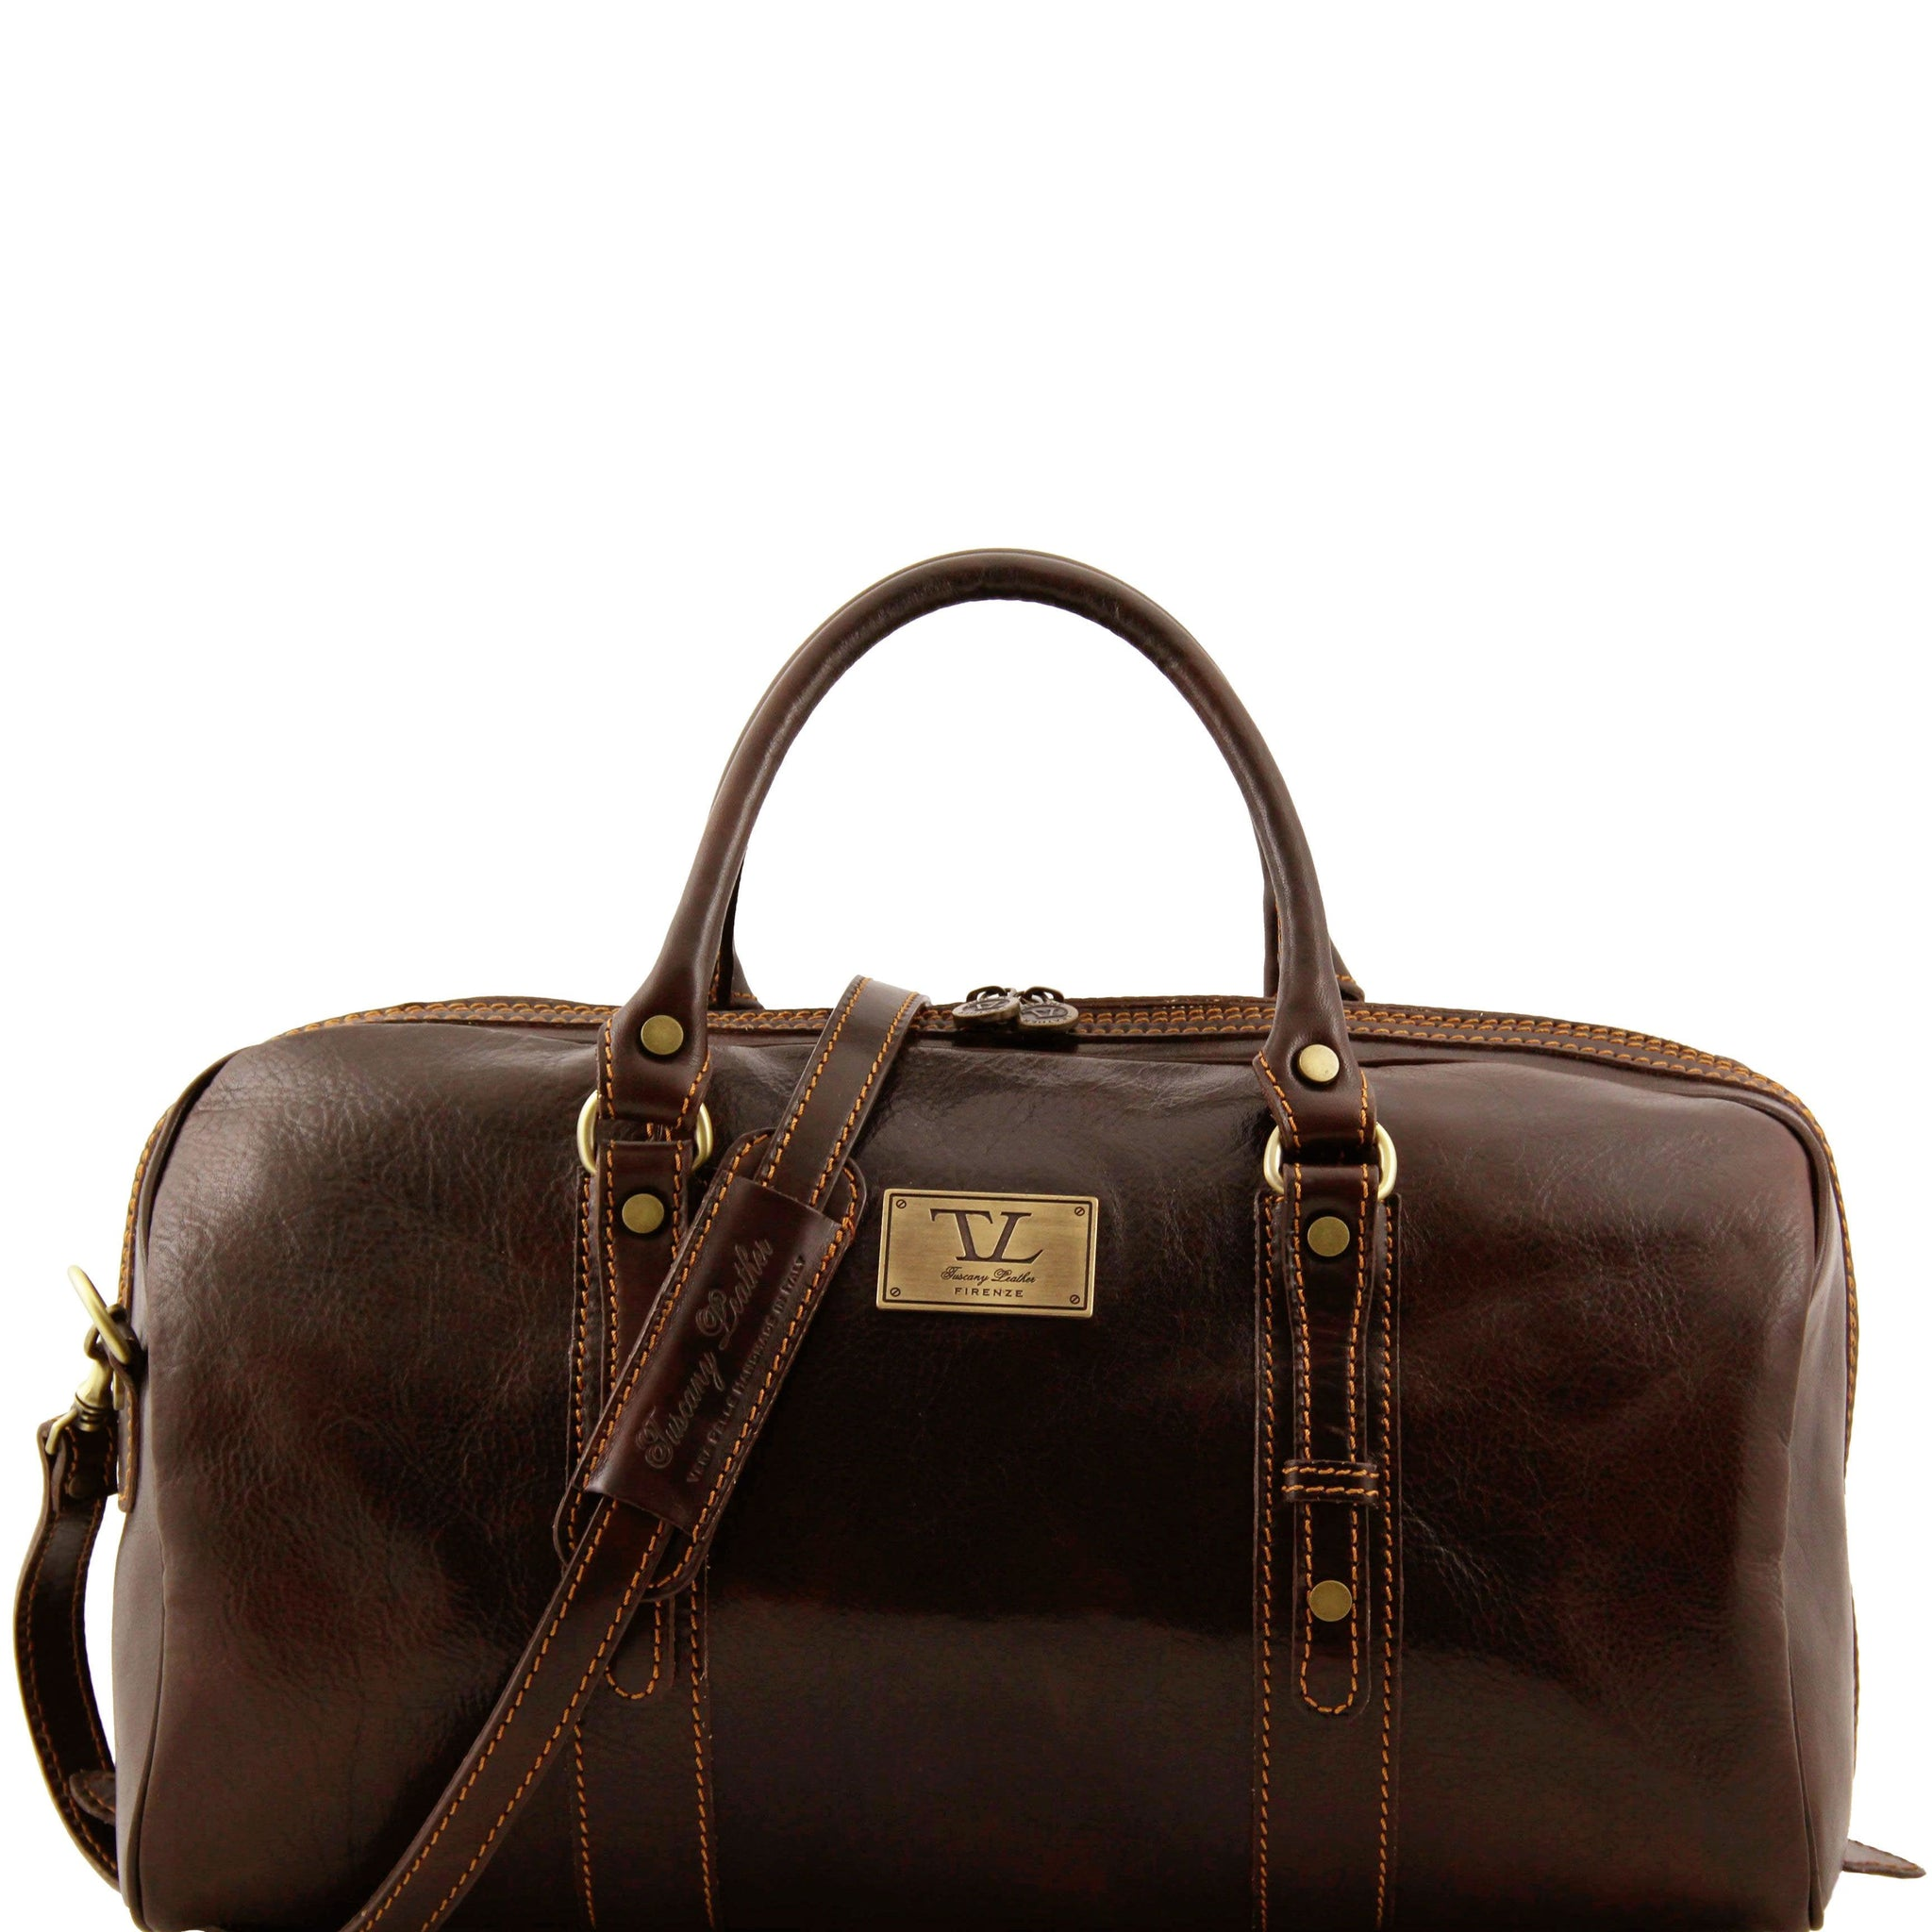 Tuscany Leather 'Francoforte' Exclusive Leather Travel Bag (Small) Duffle Bag Tuscany Leather Dark Brown